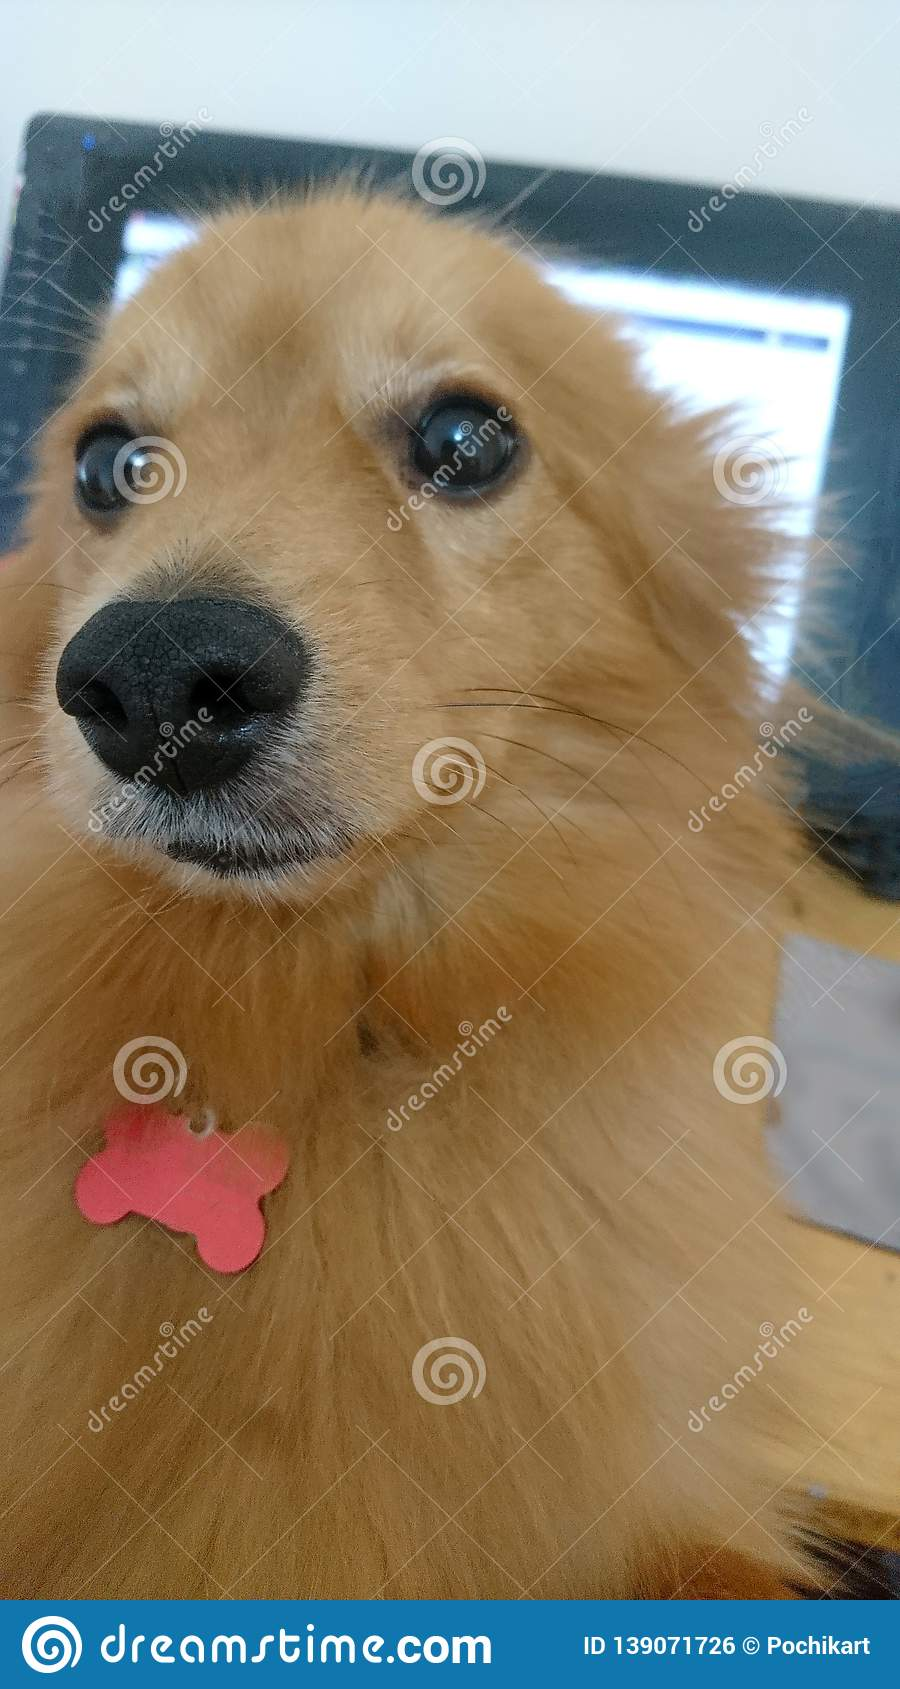 Cute Fluffy Orange Dog Leans in Front of Computer Screen